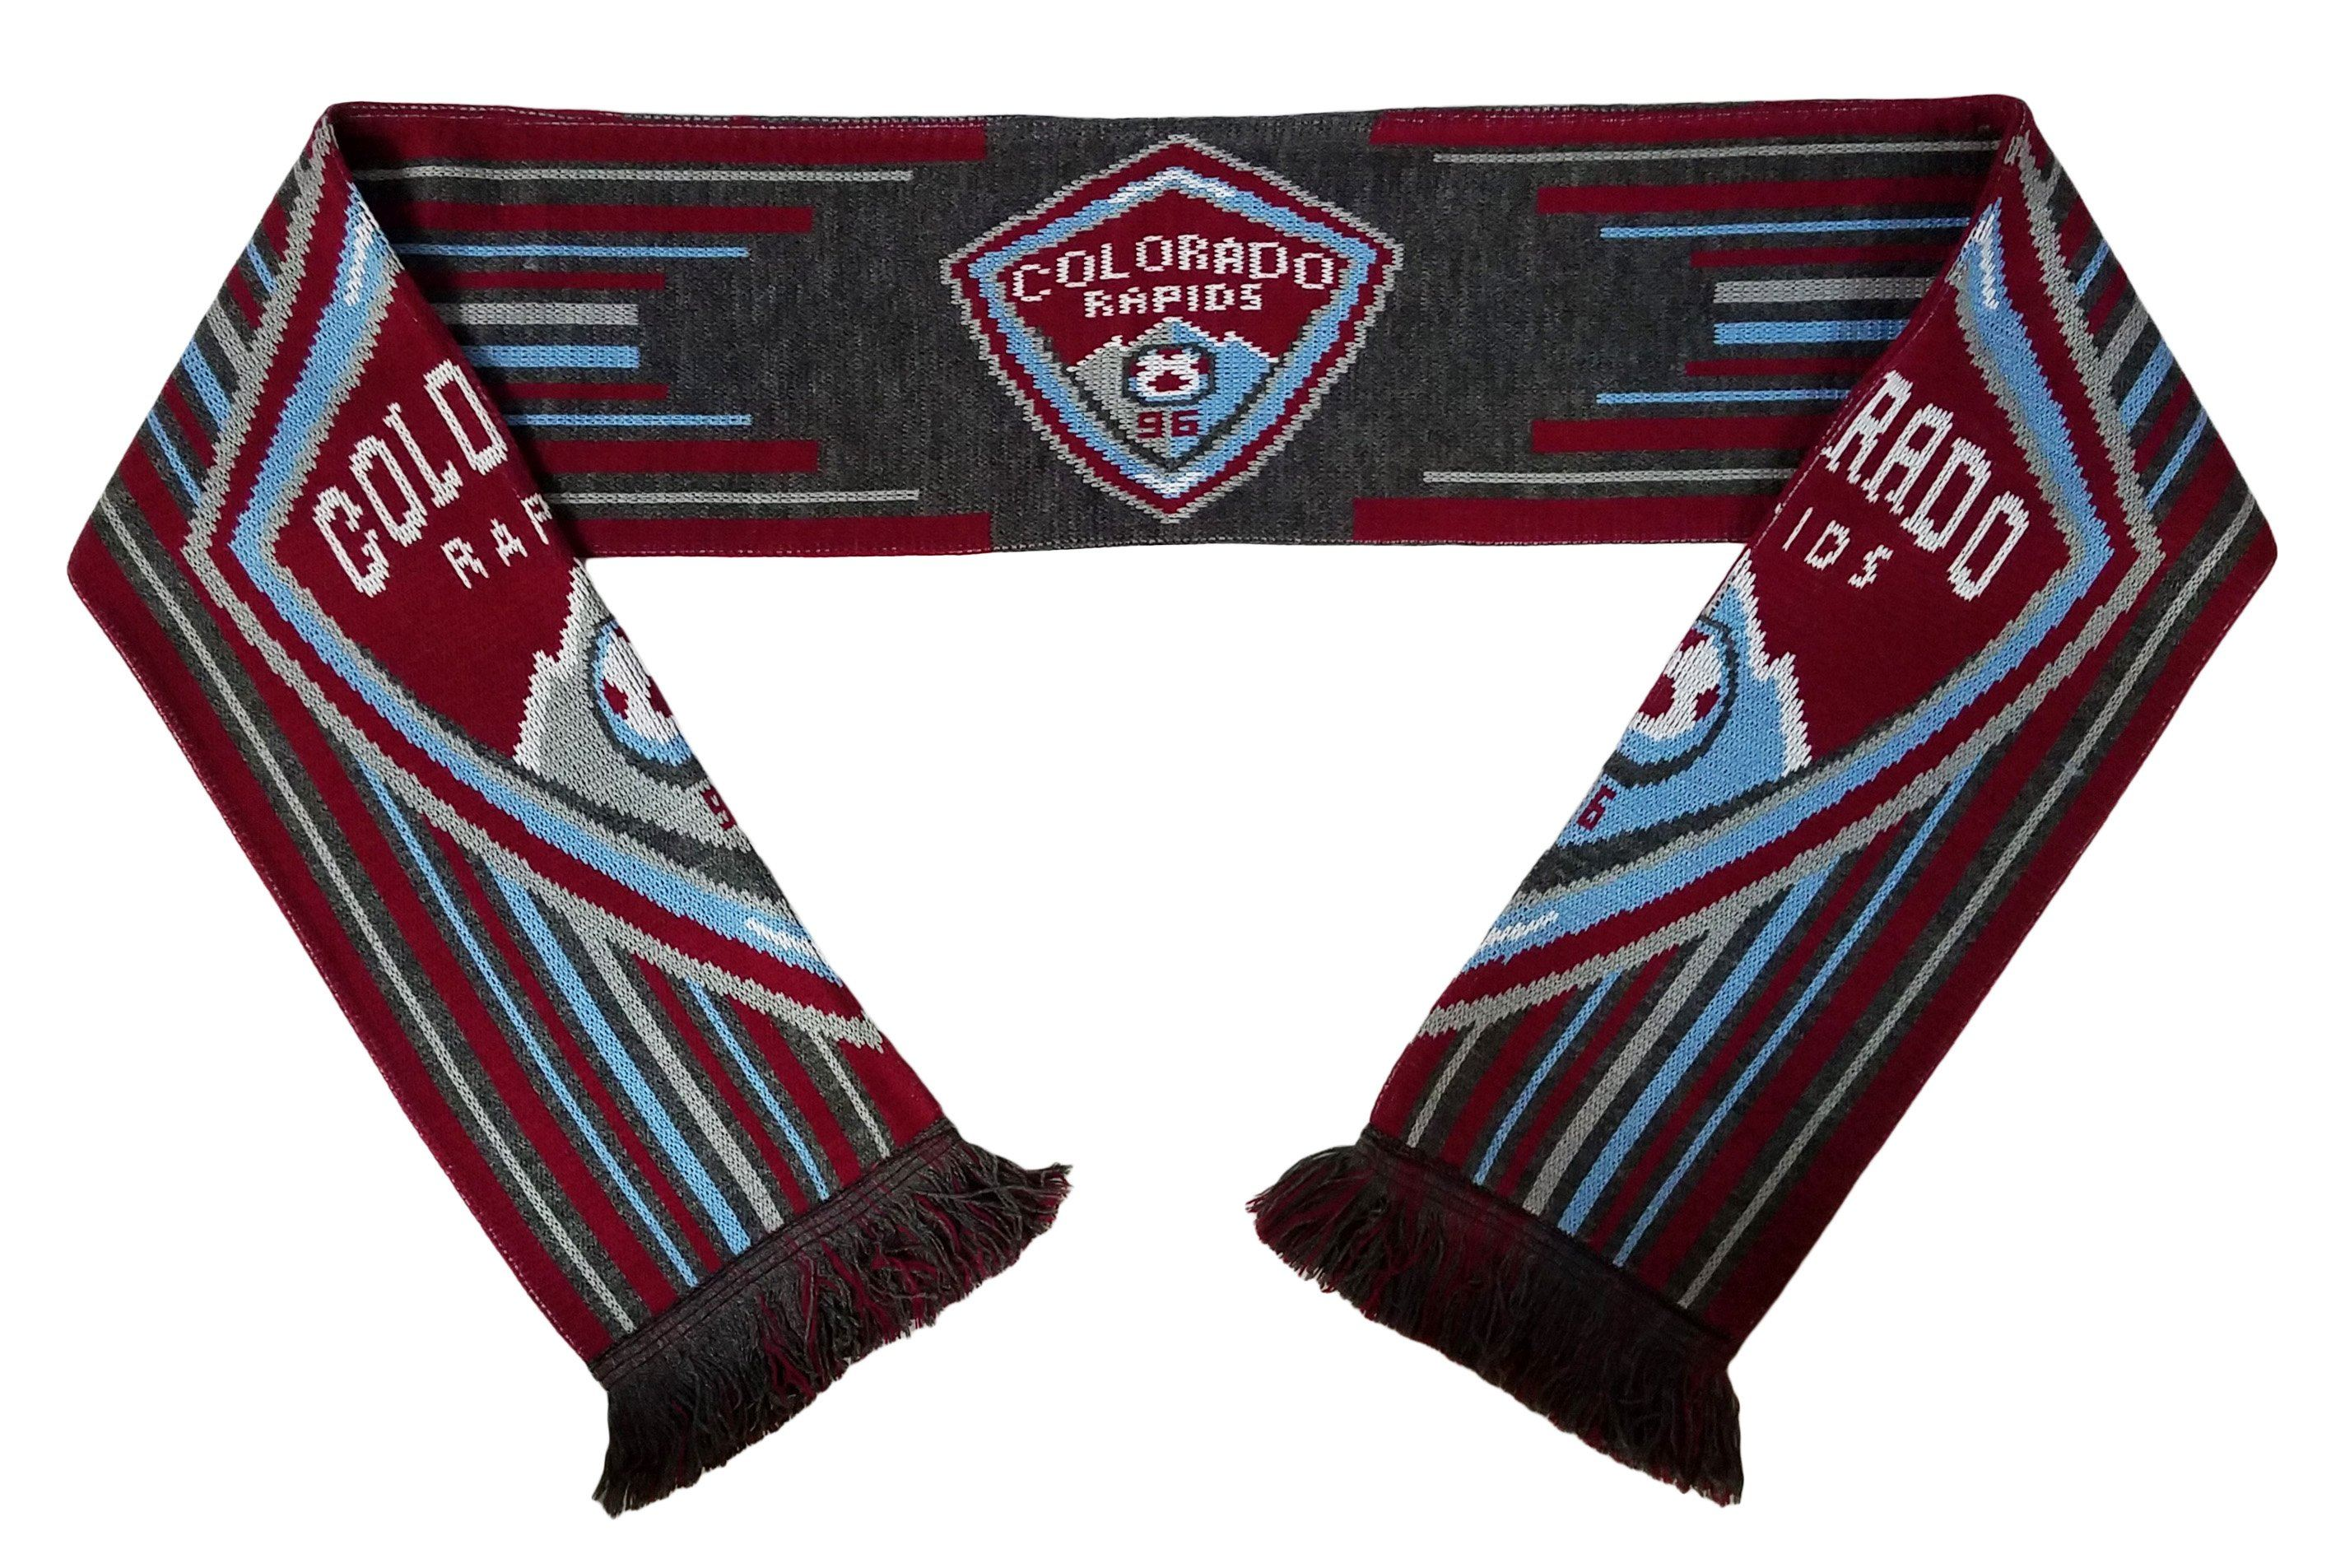 COLORADO RAPIDS SCARF - Crest